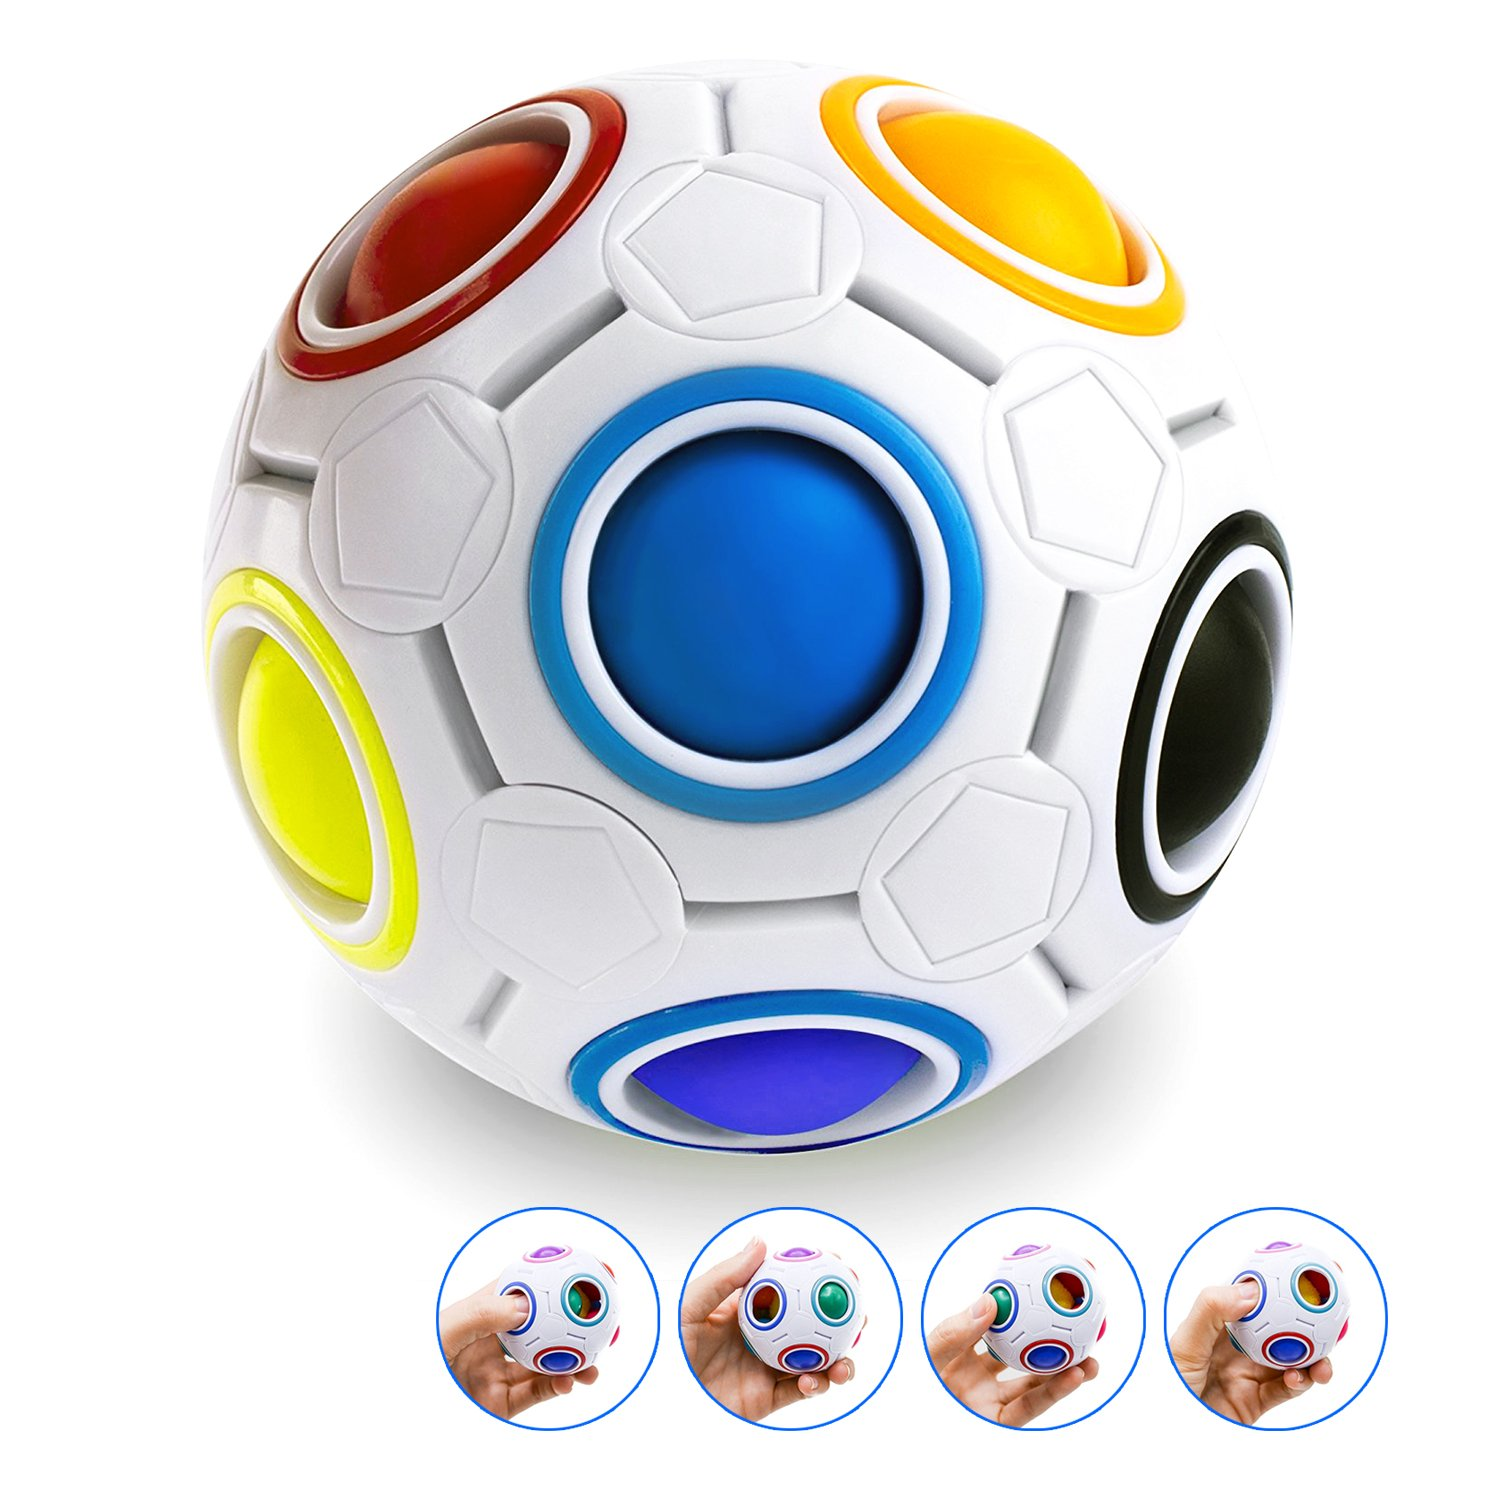 Y Box Rainbow Ball Magic cube Fidget toy puzzle Magic Rainbow ball puzzle Fun fidget